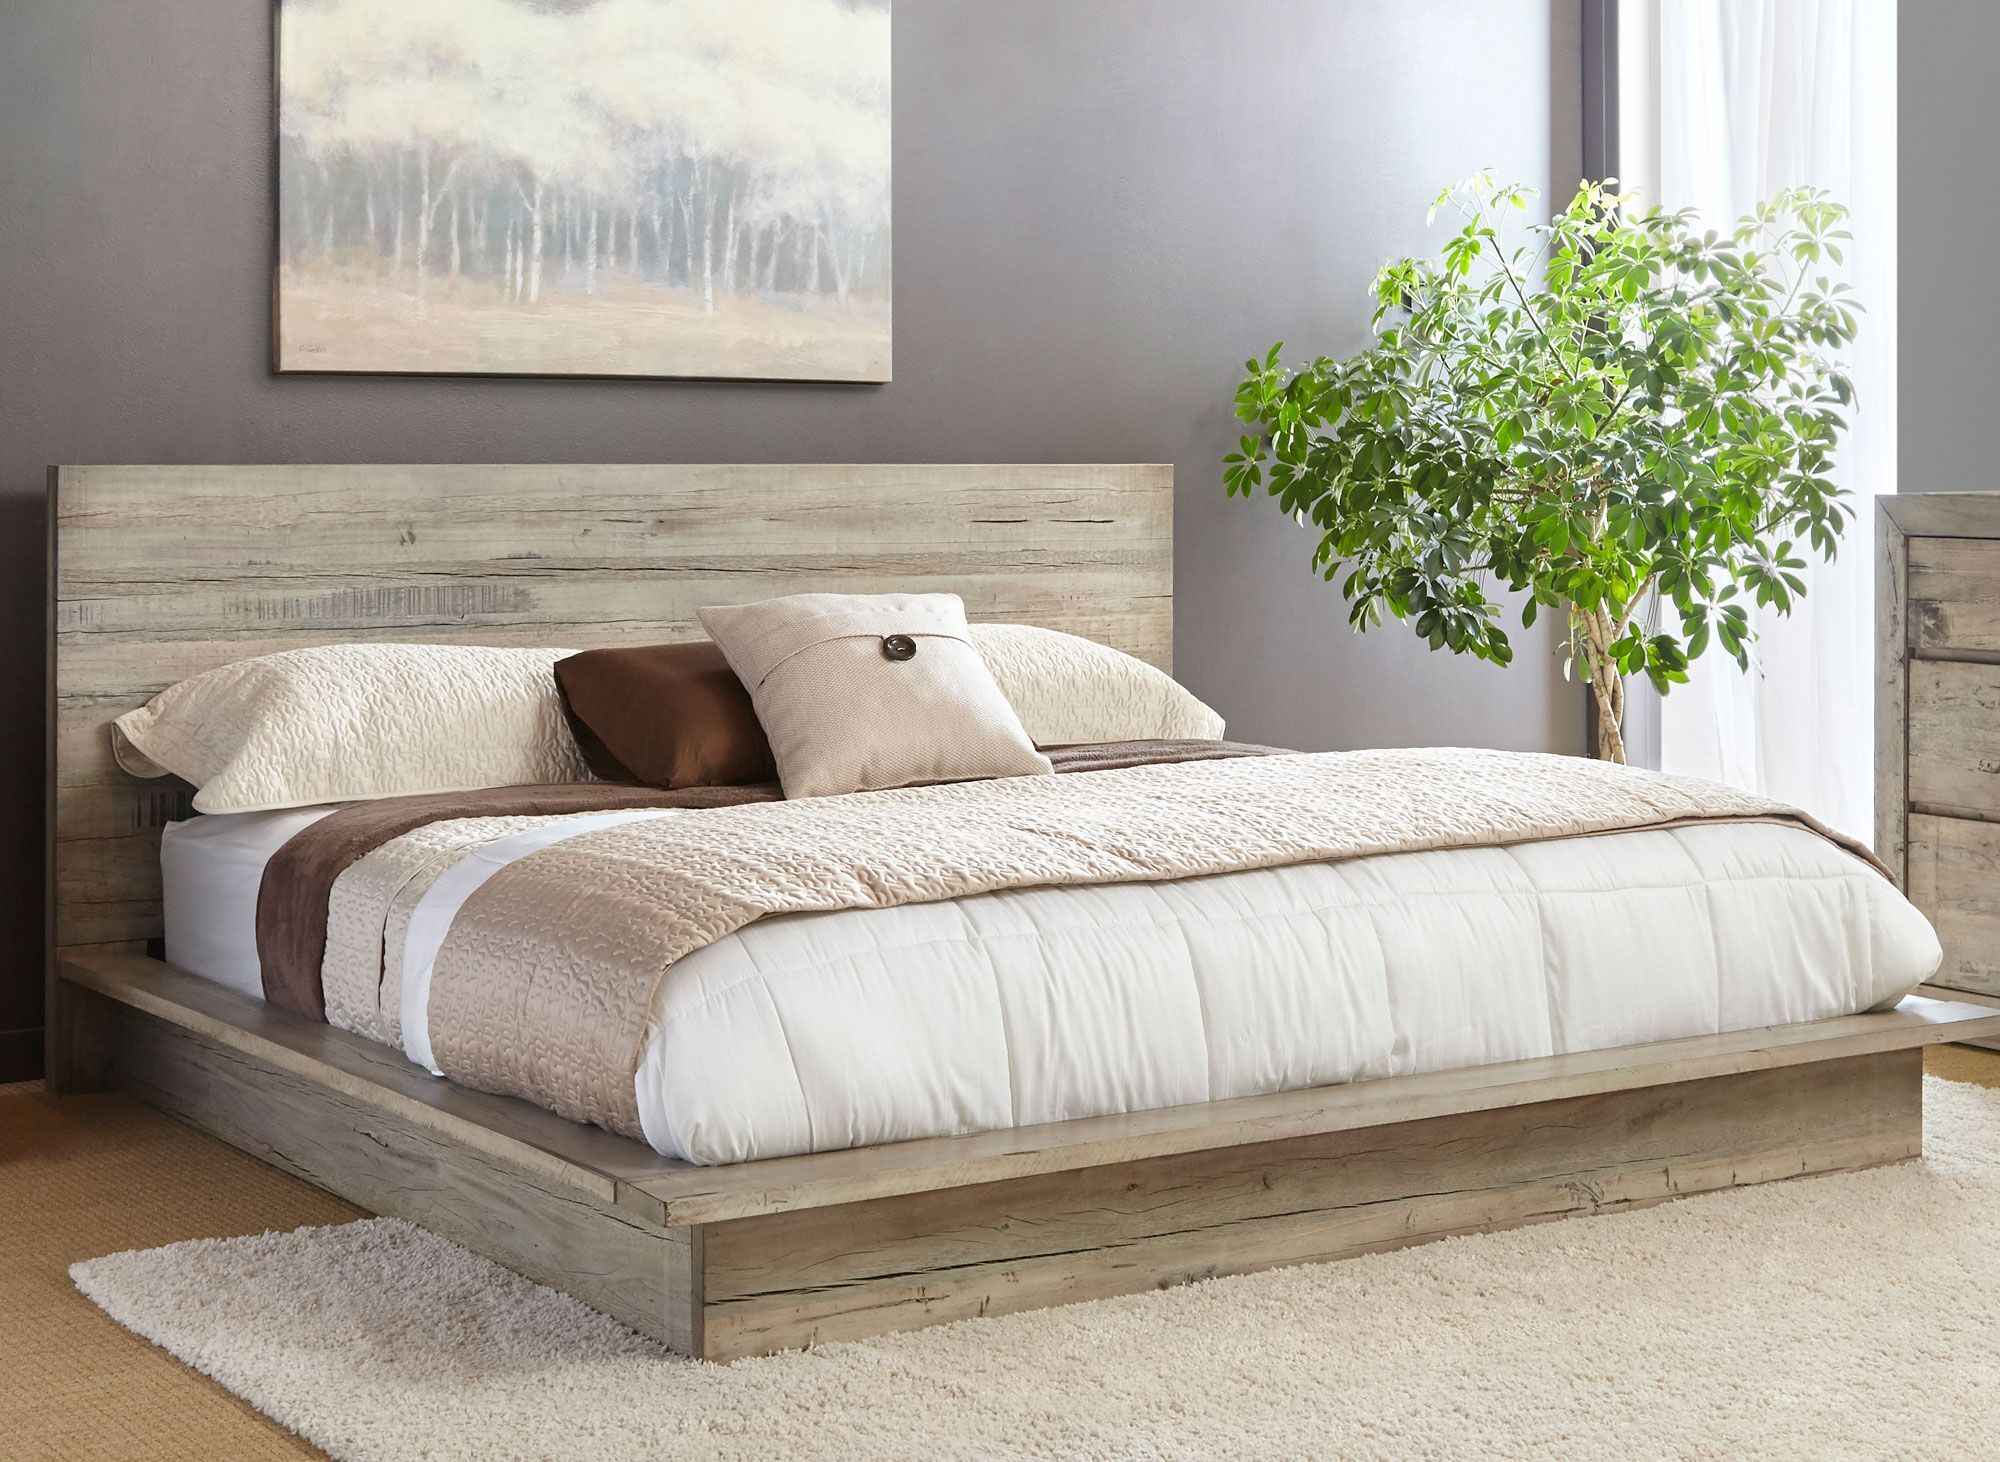 This Is A Beautiful Bedroom White Washed Modern Rustic King